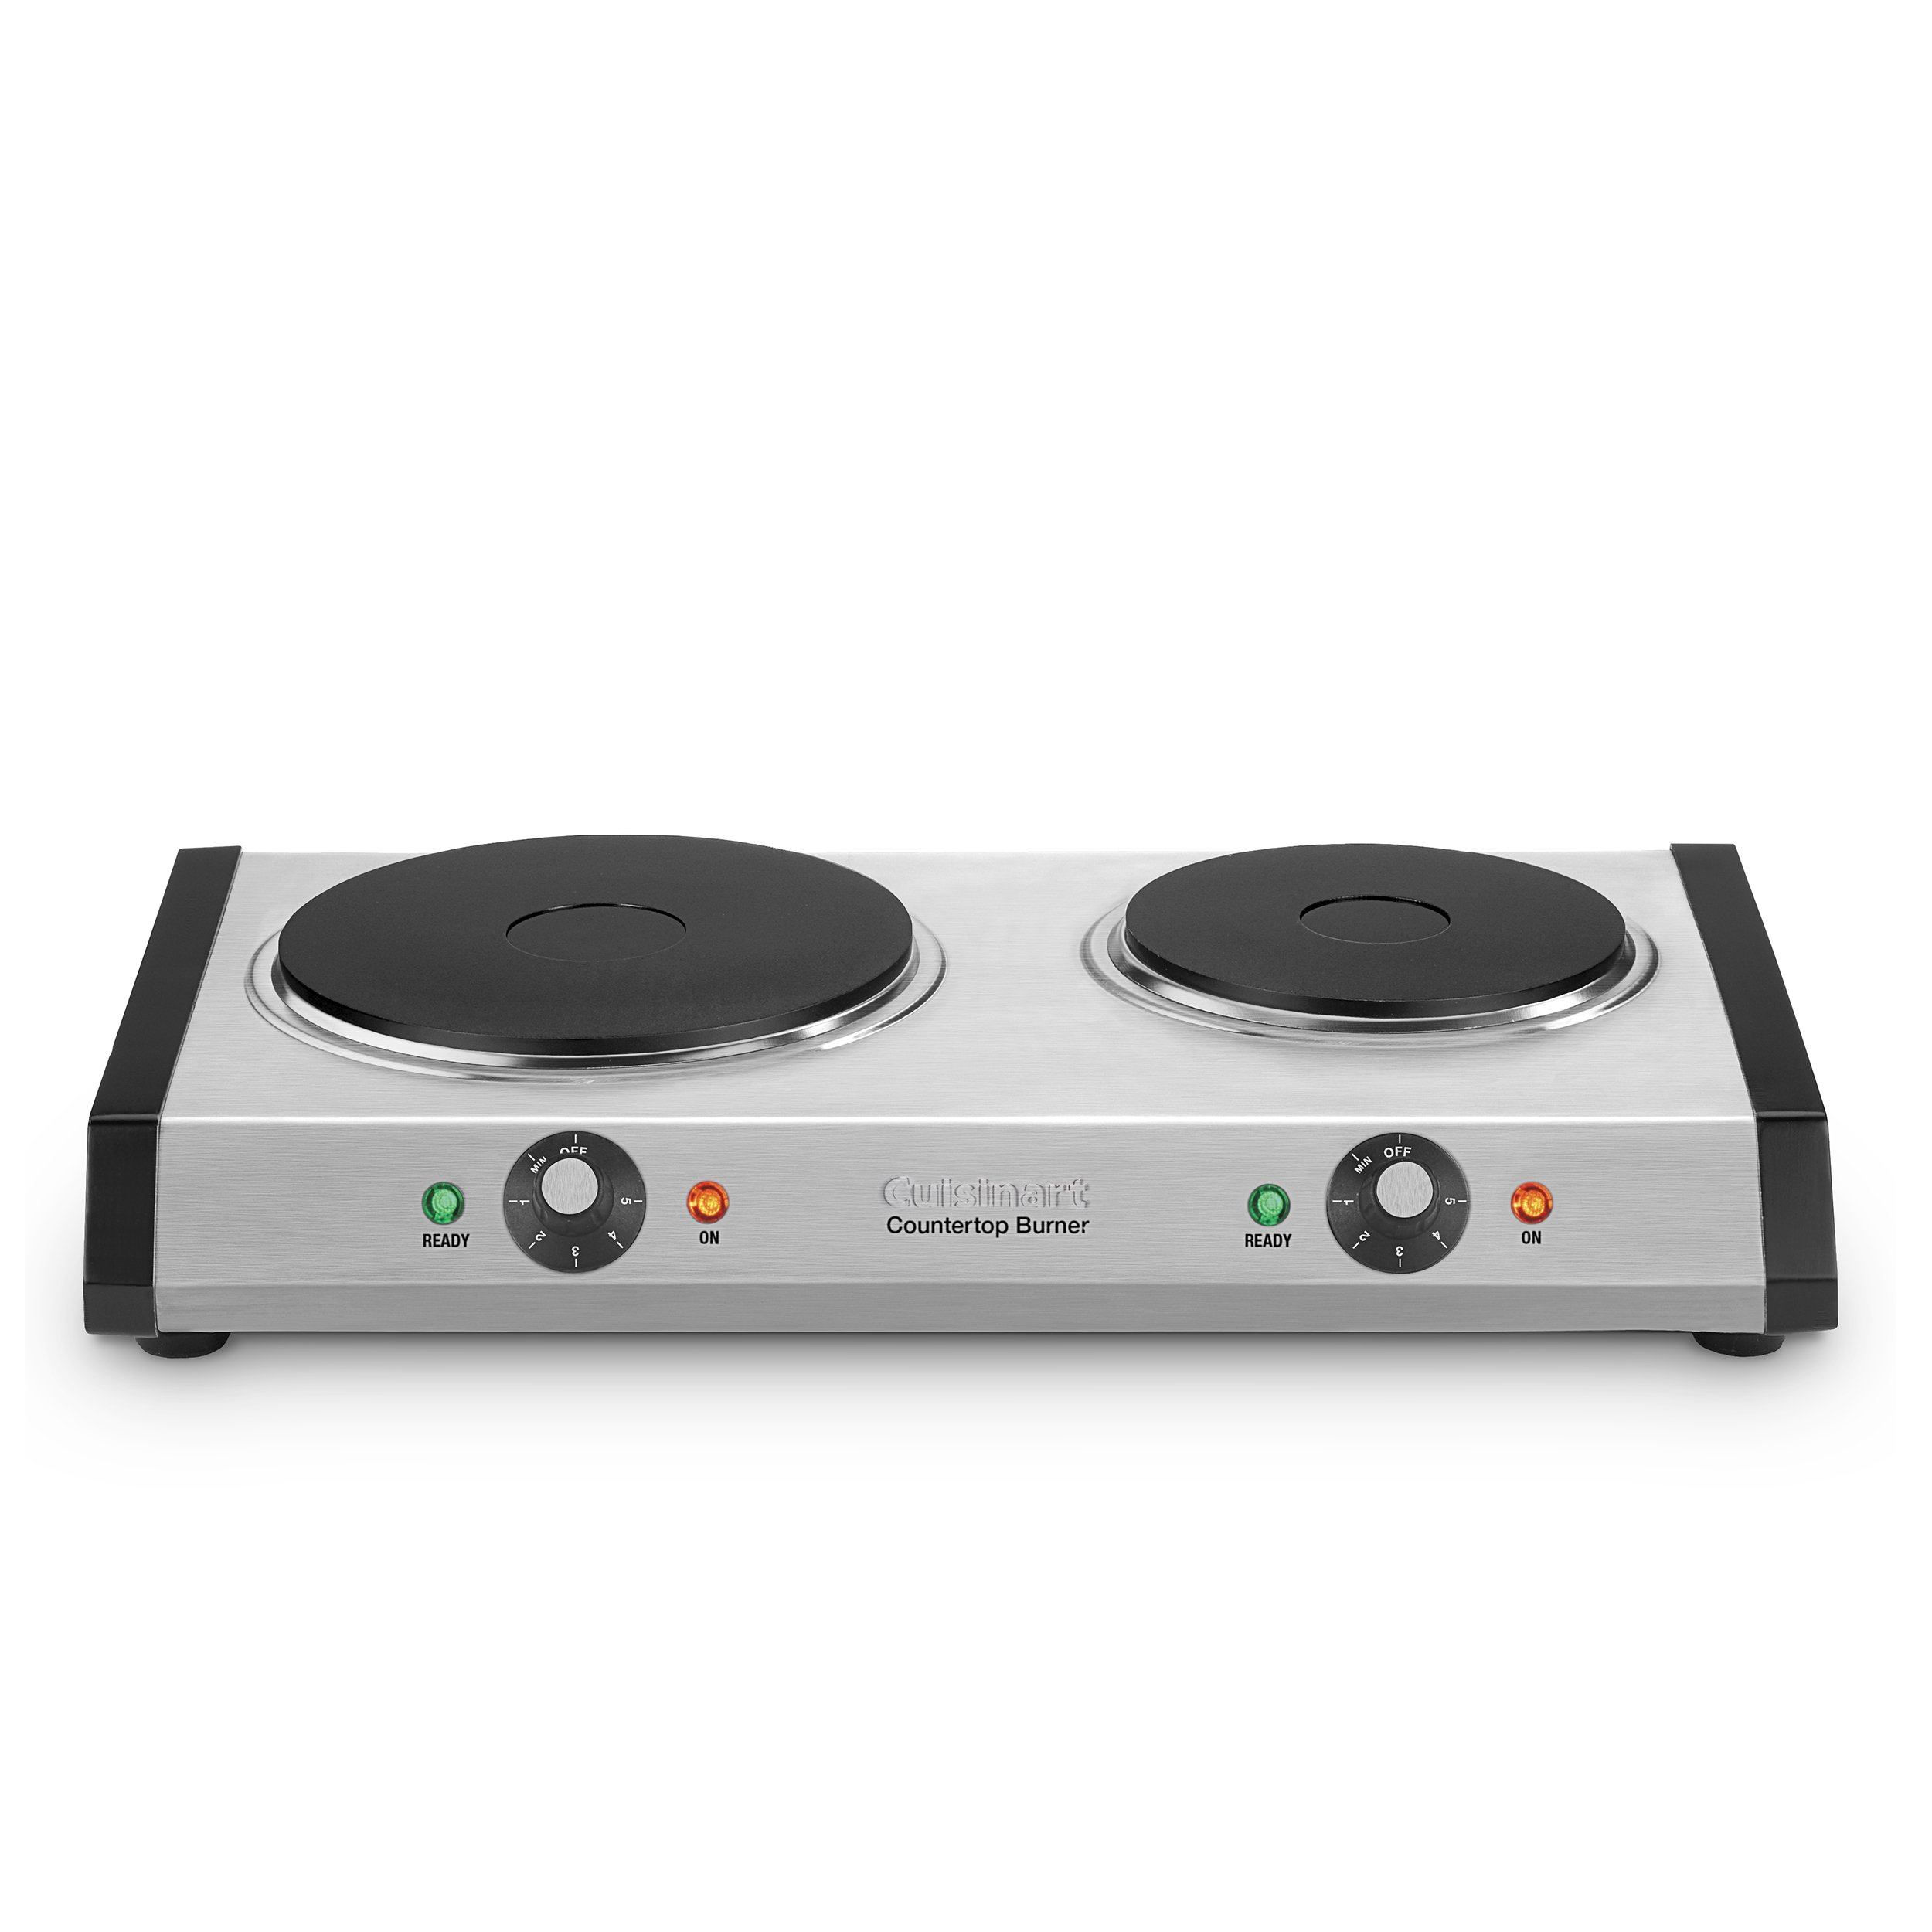 Cuisinart CB-60 Cast-Iron Double Burner, Stainless Steel by Cuisinart